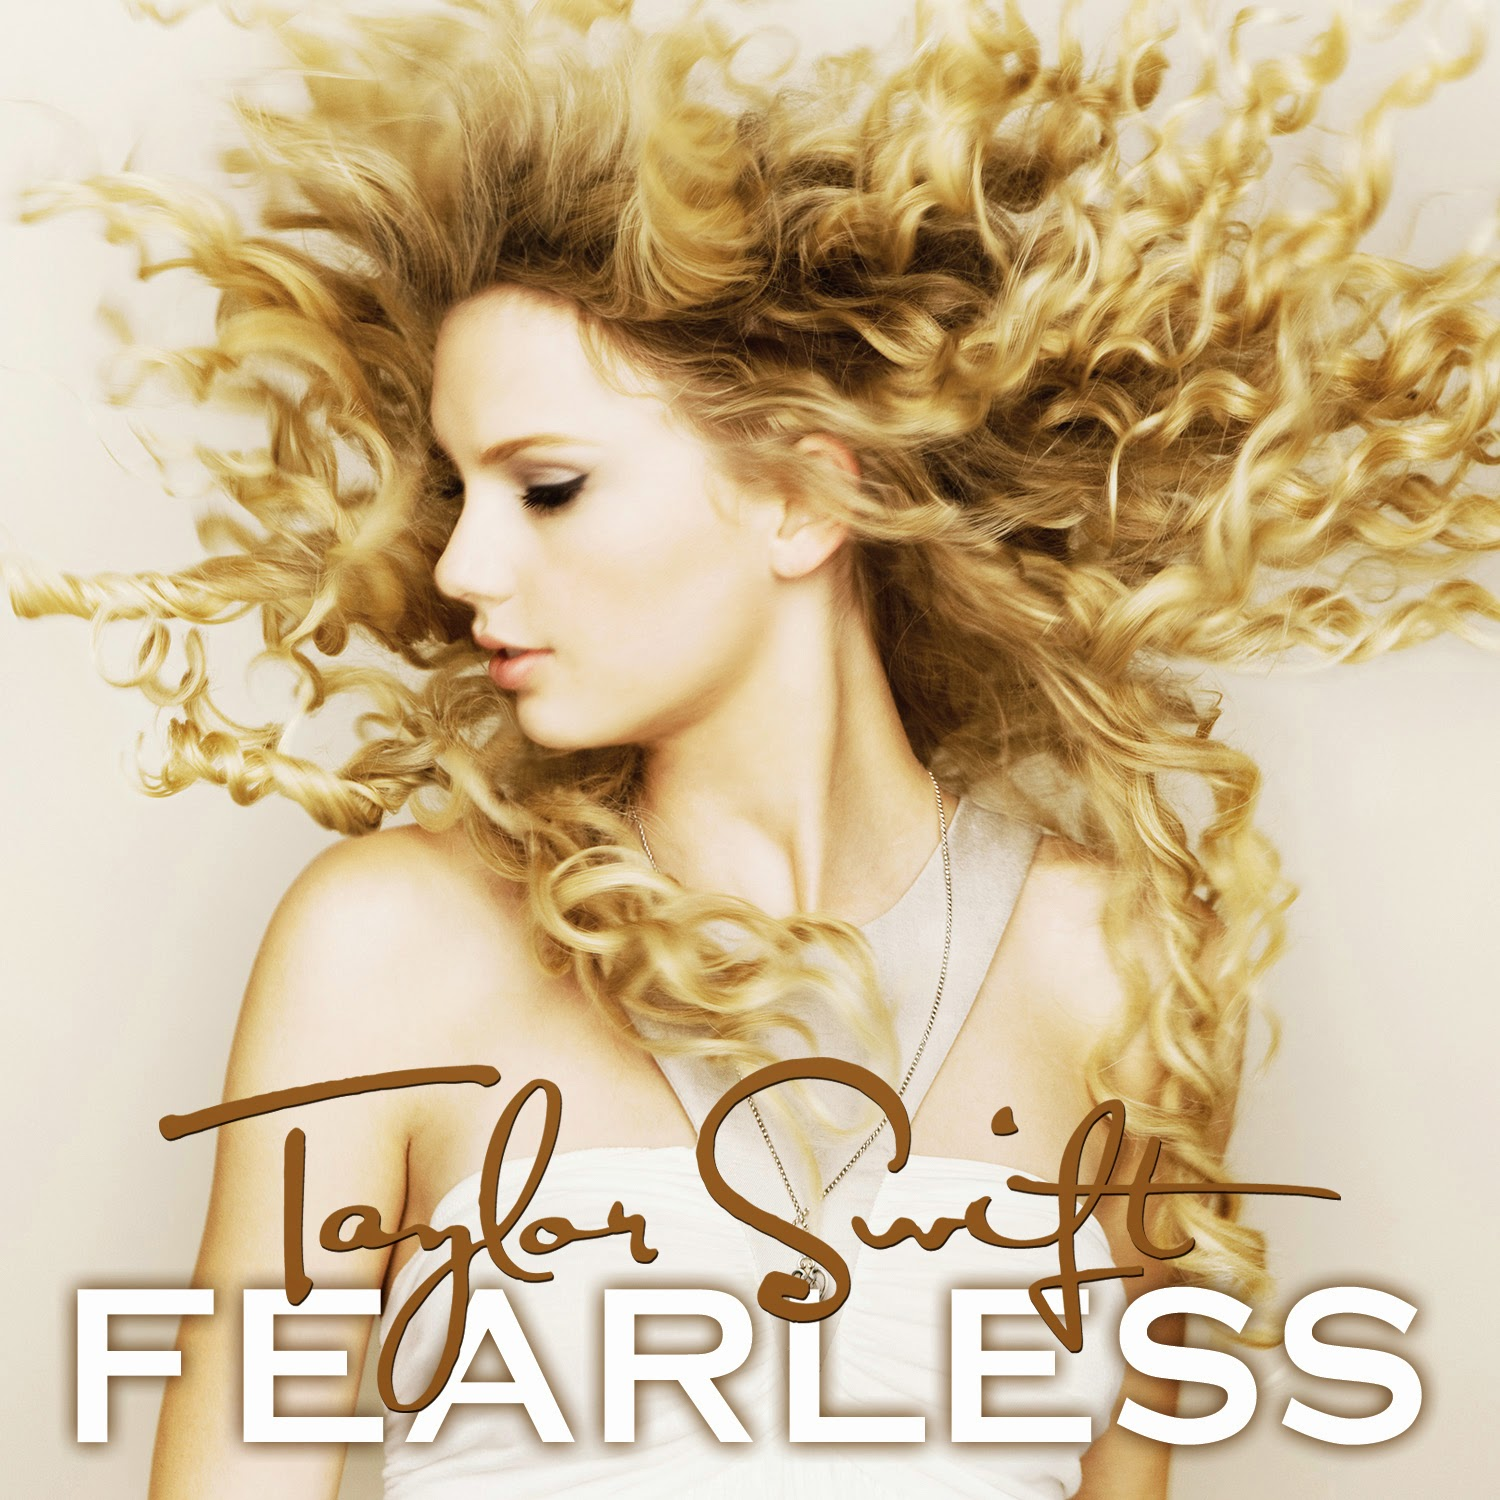 Image result for taylor swift fearless album